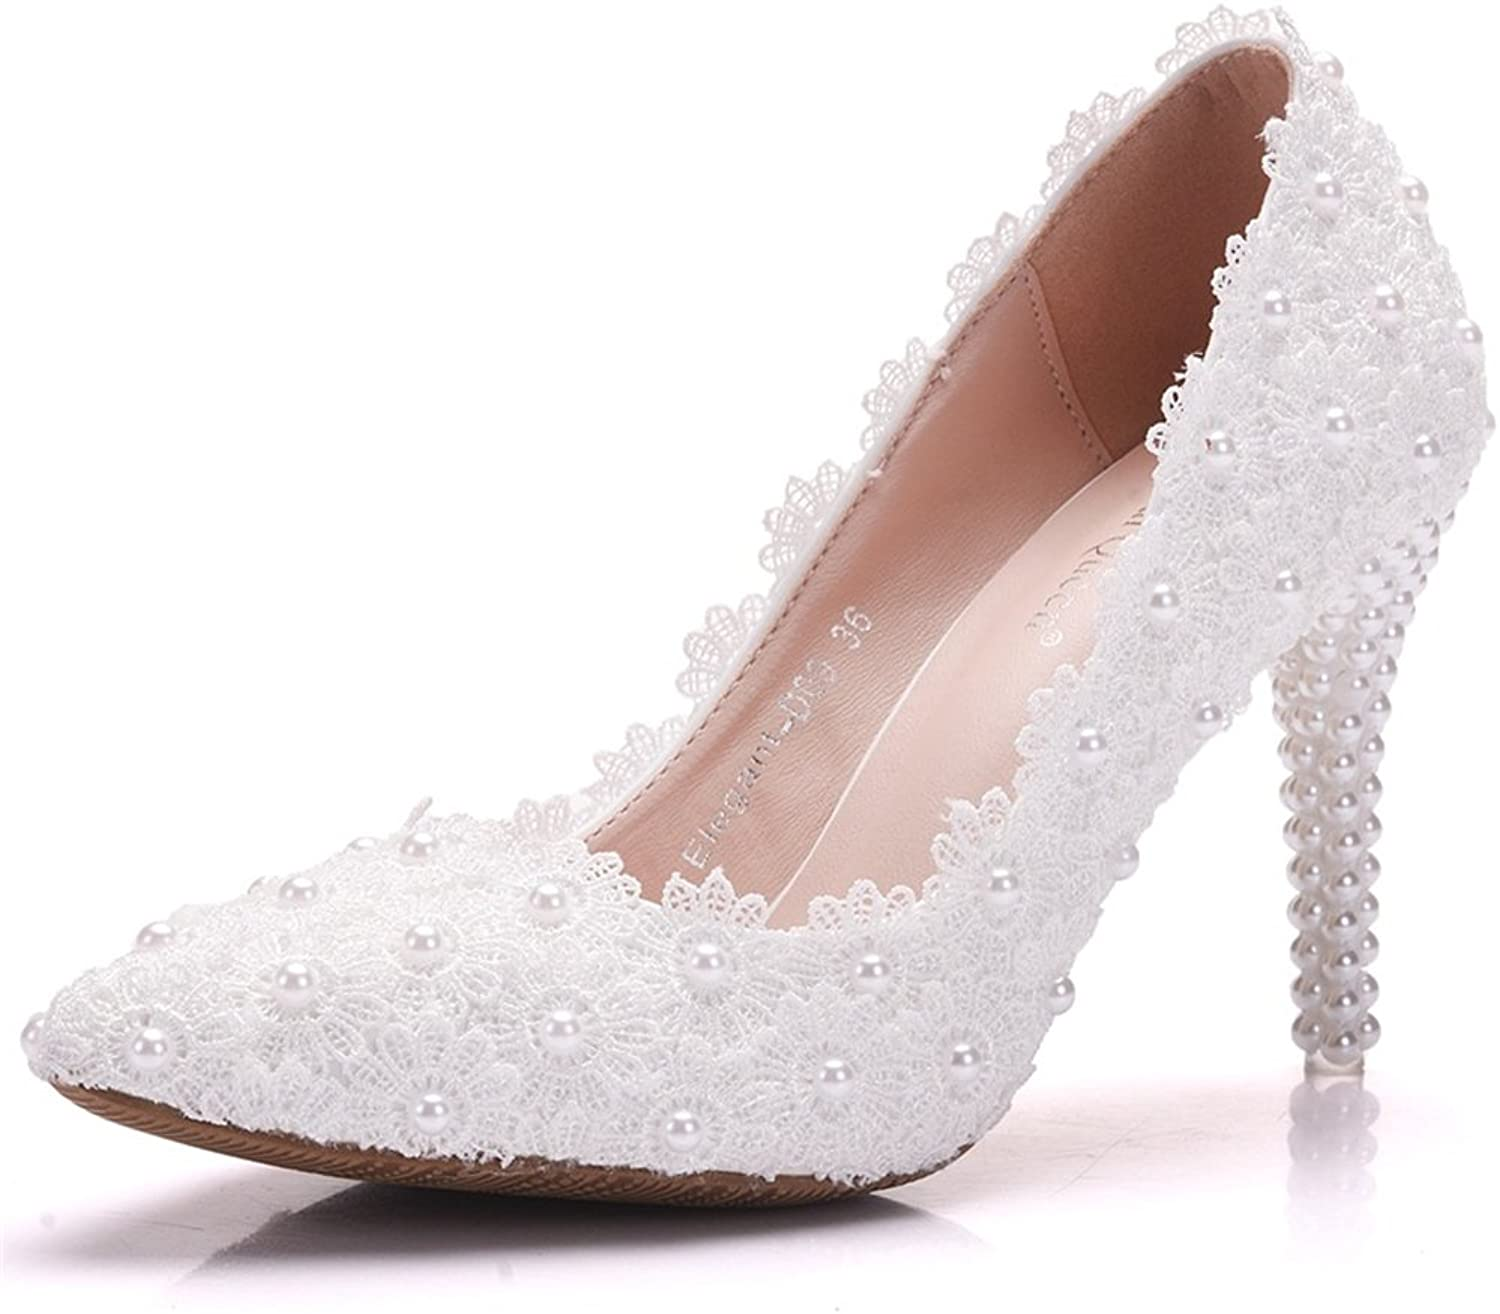 Eleganceoo Women Pumps White Lace Flower Pearl High Heel Wedding Bridal Dress shoes